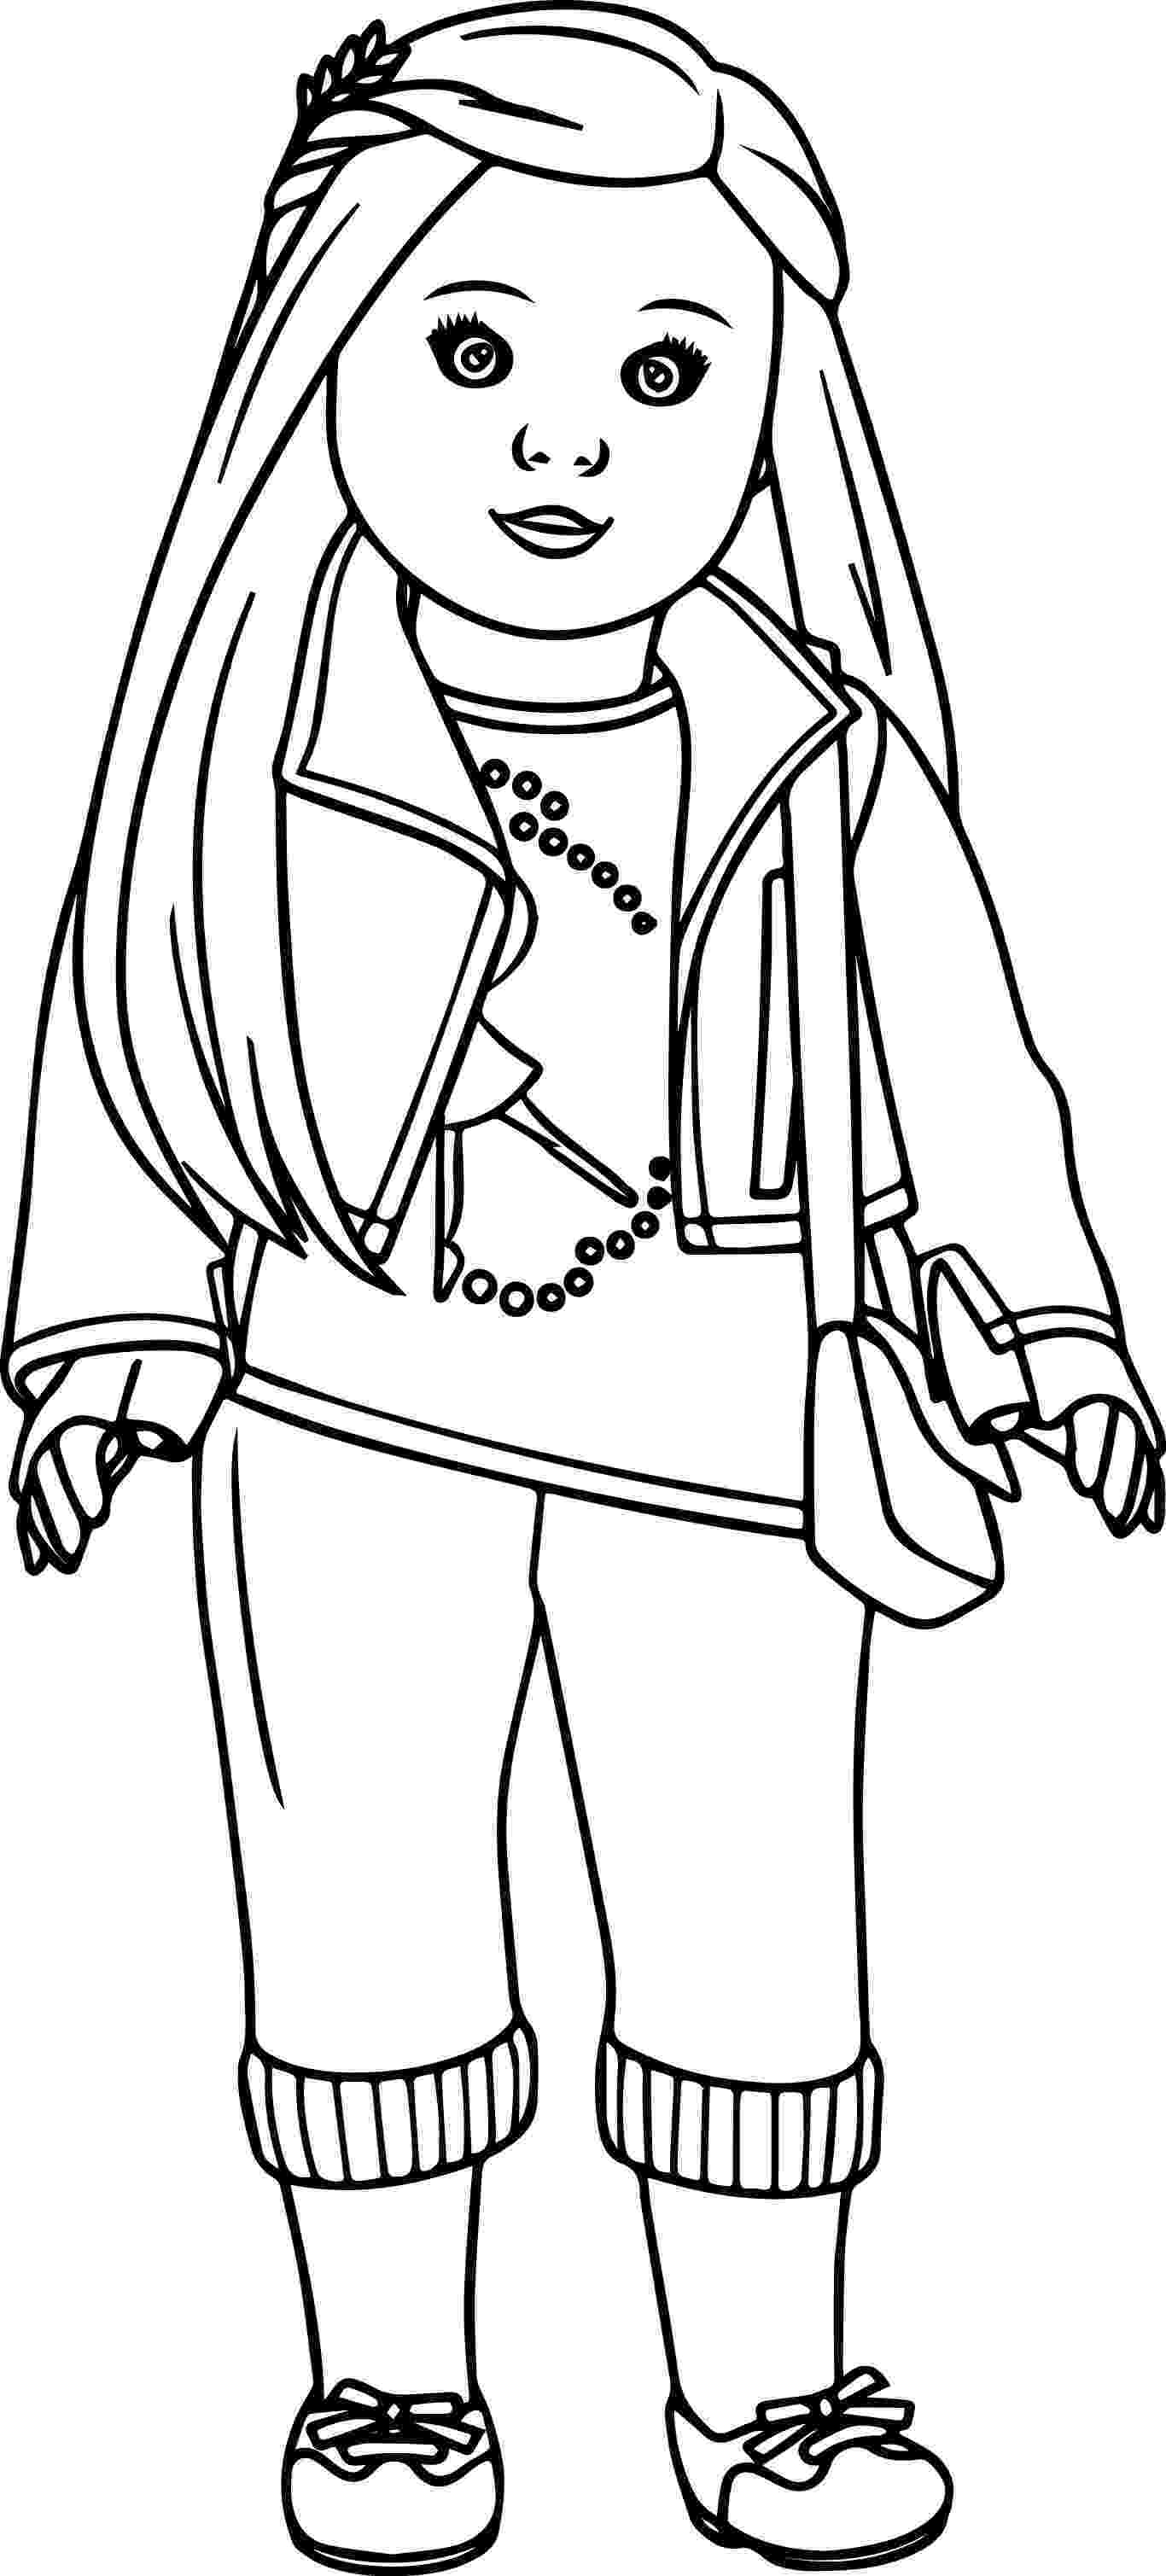 ag coloring pages the hero of color city coloring book pages ag coloring